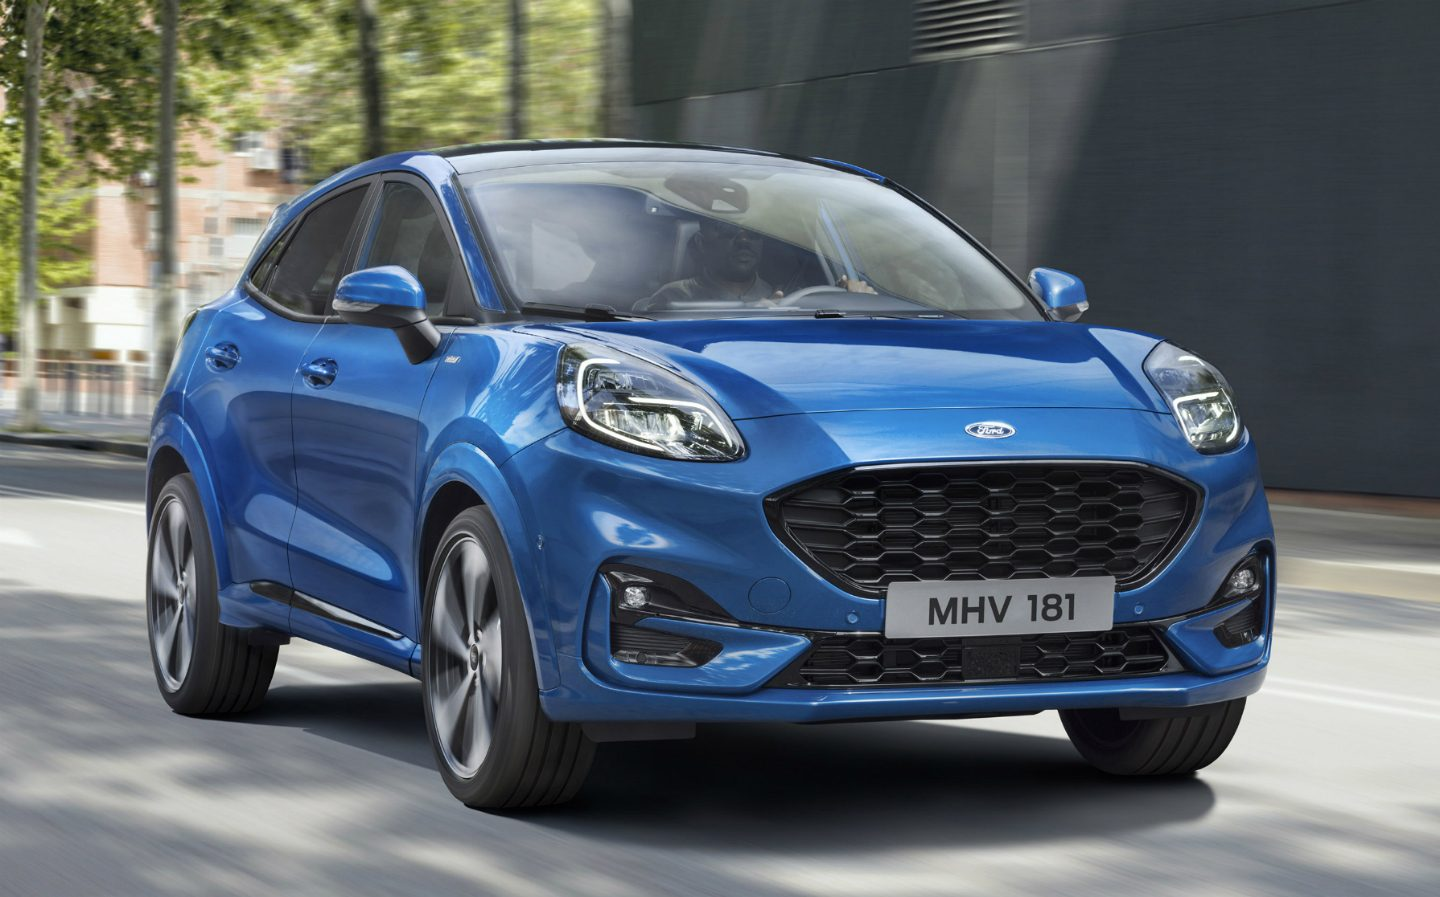 2020 Ford Puma Titanium X: the Perfect Compact Crossover SUV Debuts in Europe